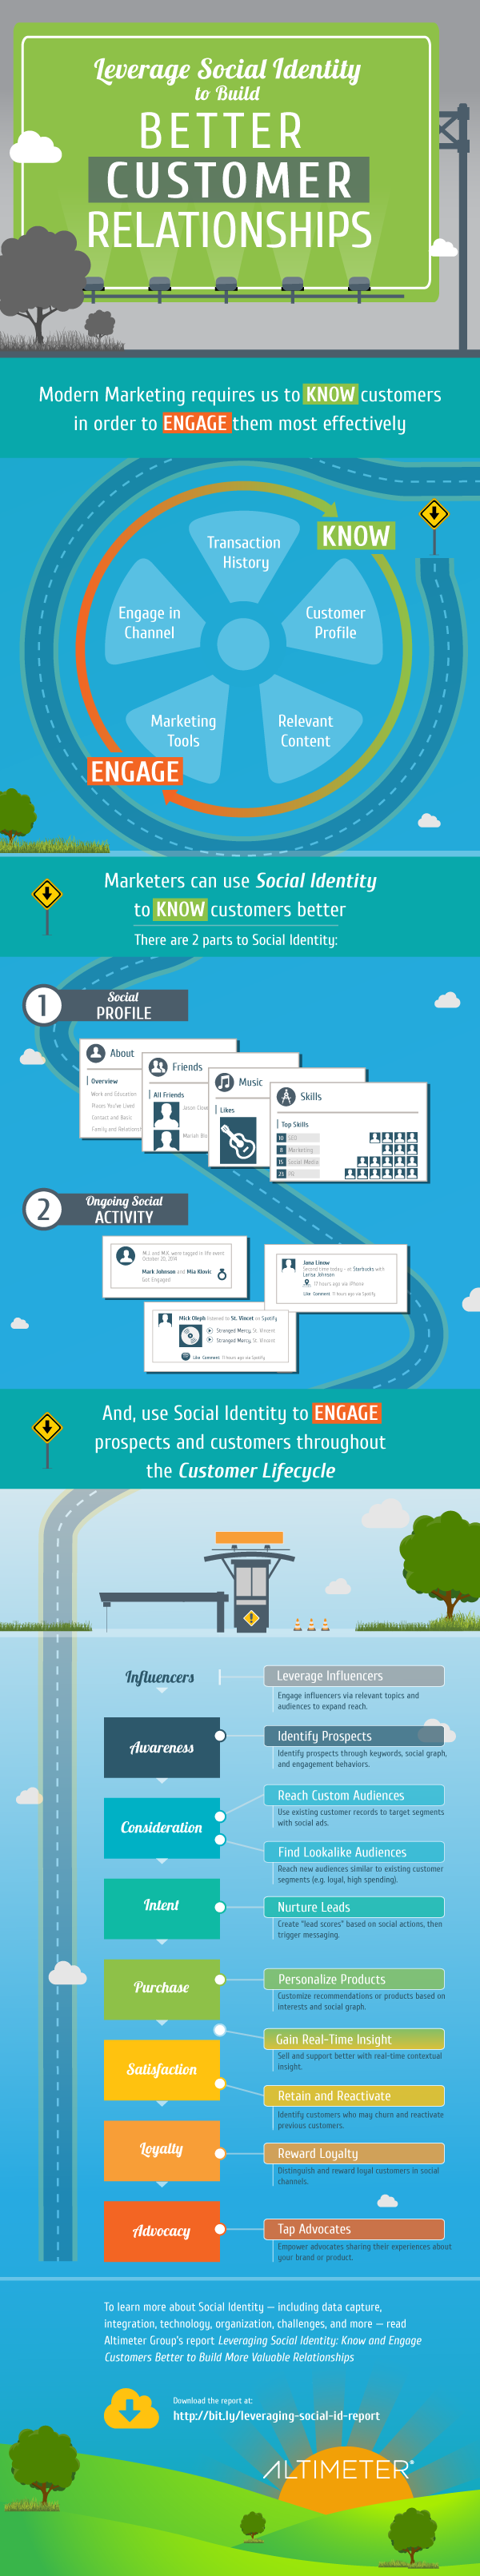 INFOGRAPHIC: How the Modern Marketer Uses Social Identity to Engage Customers Throughout the Customer Journey